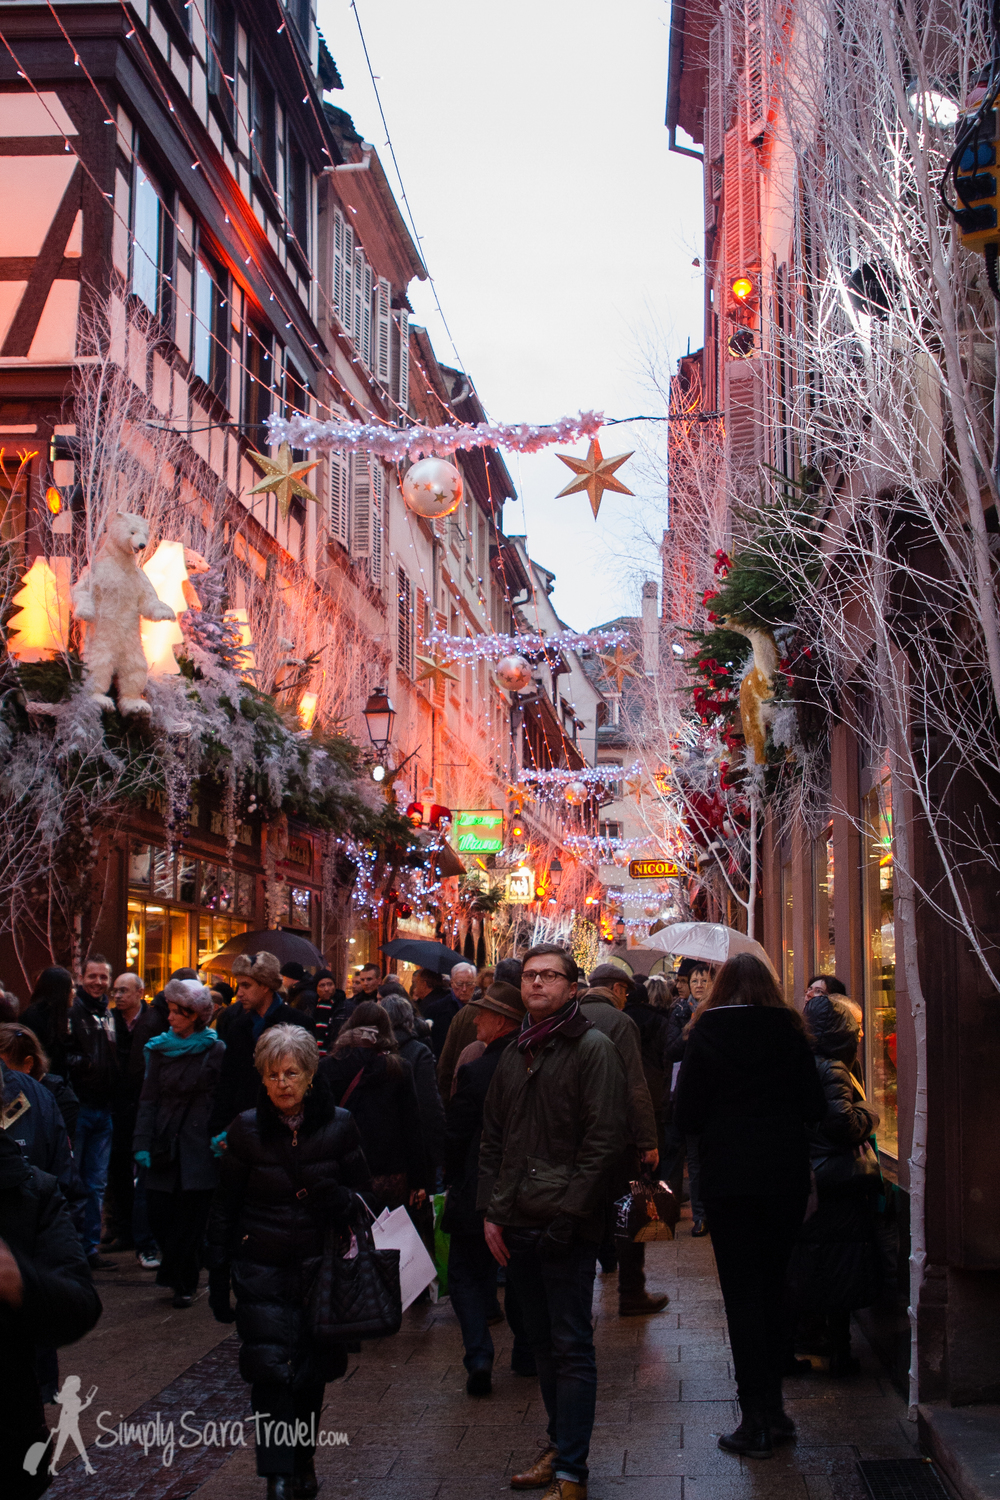 Seriously, Strasbourg takes decking its halls to a whole other level!